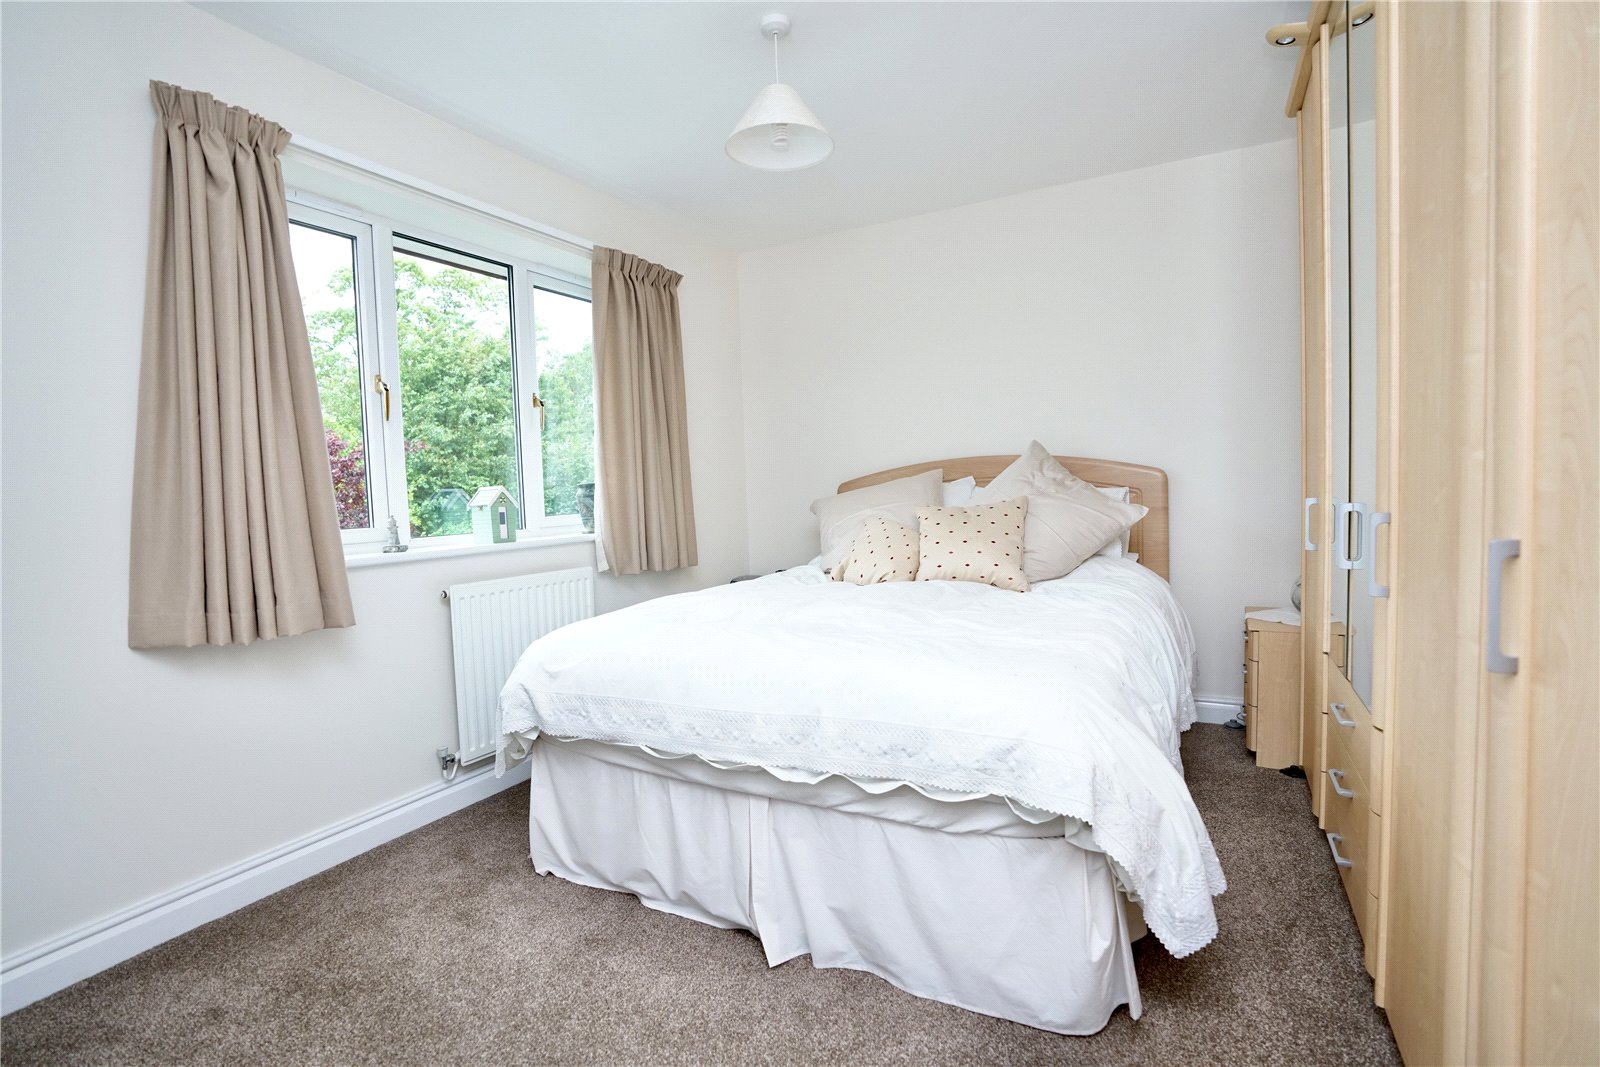 4 bed house for sale in Great Gransden 6